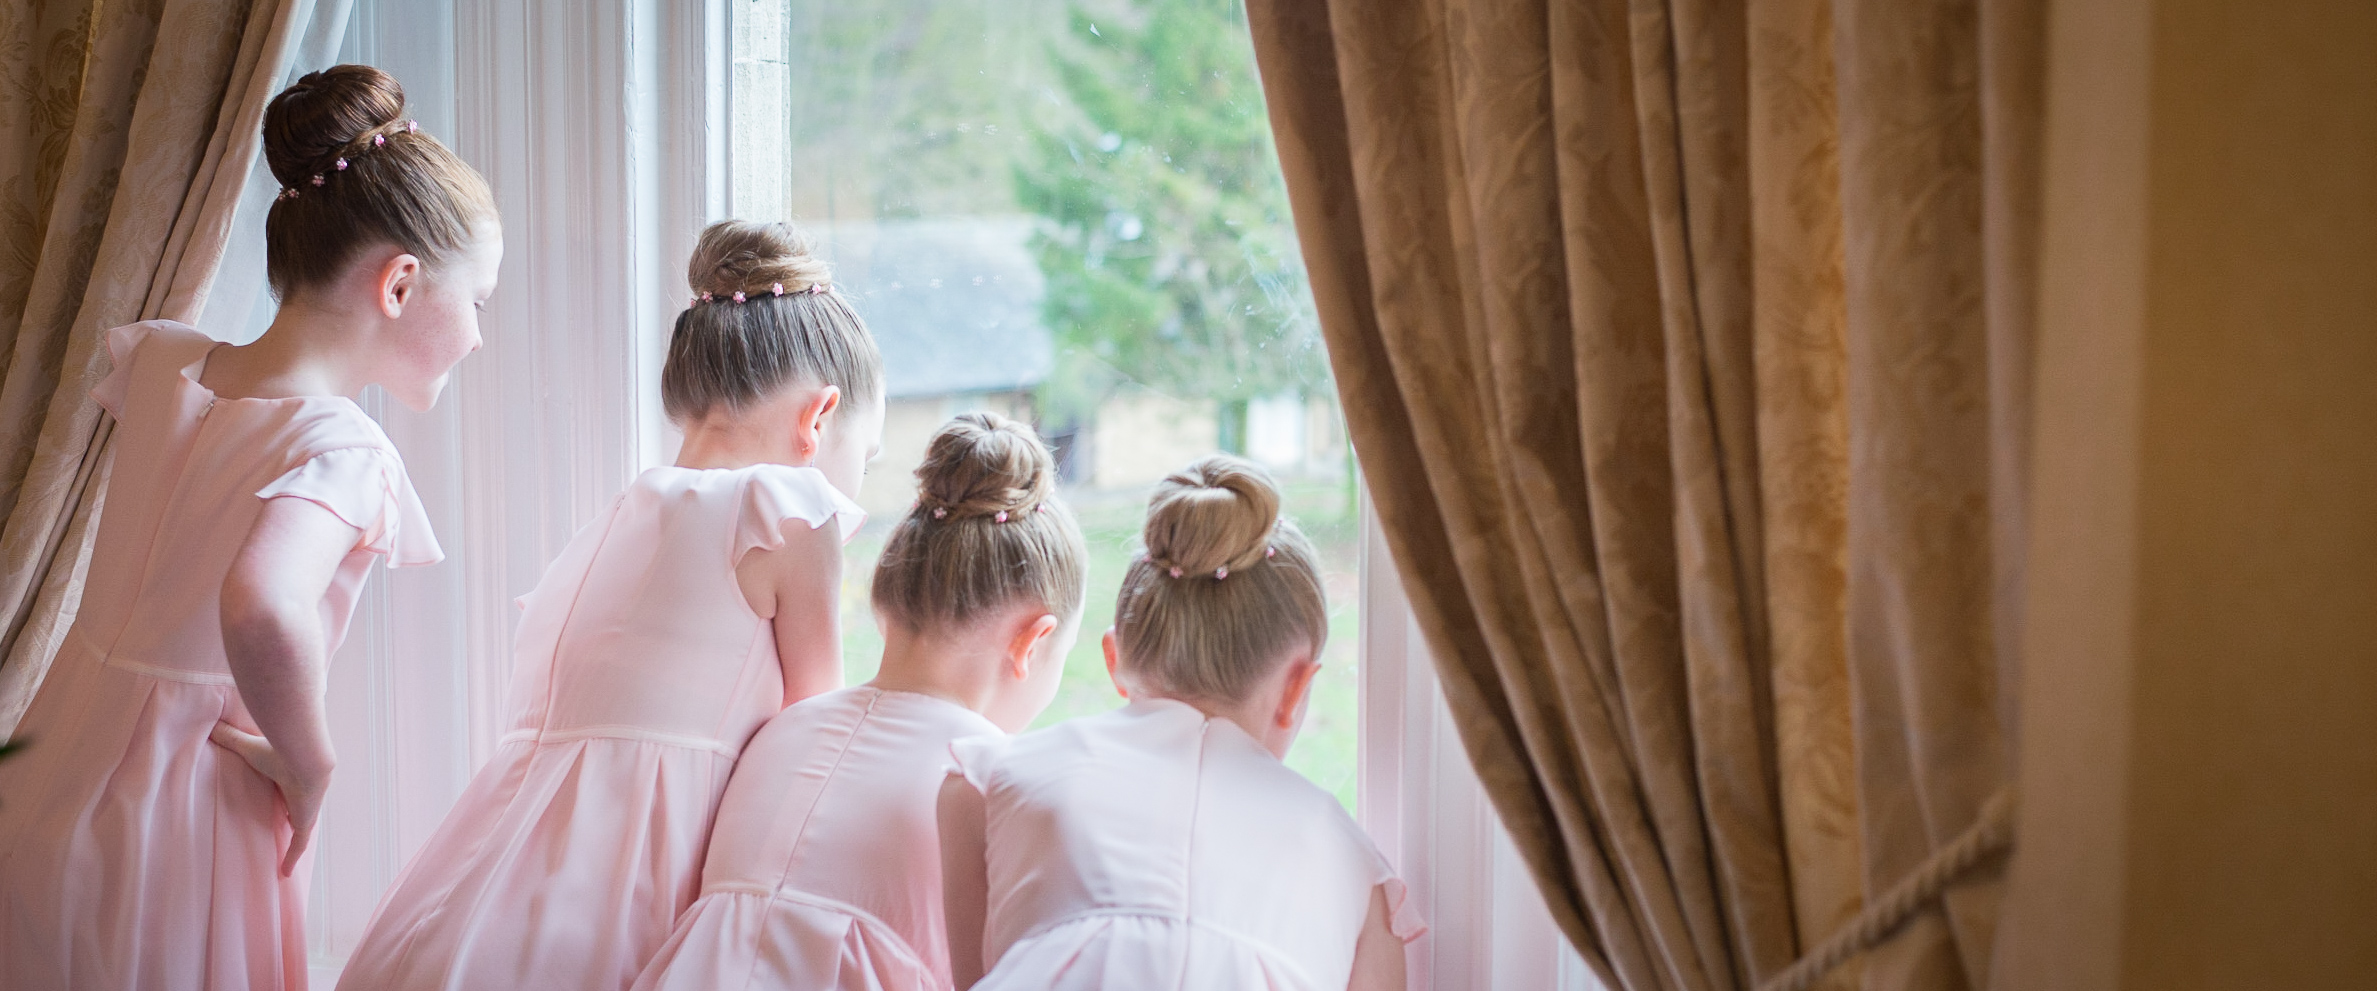 Bridesmaids looking out of the window during bridal prep. Wedding photography. www.gemmawillisphotography.co.uk